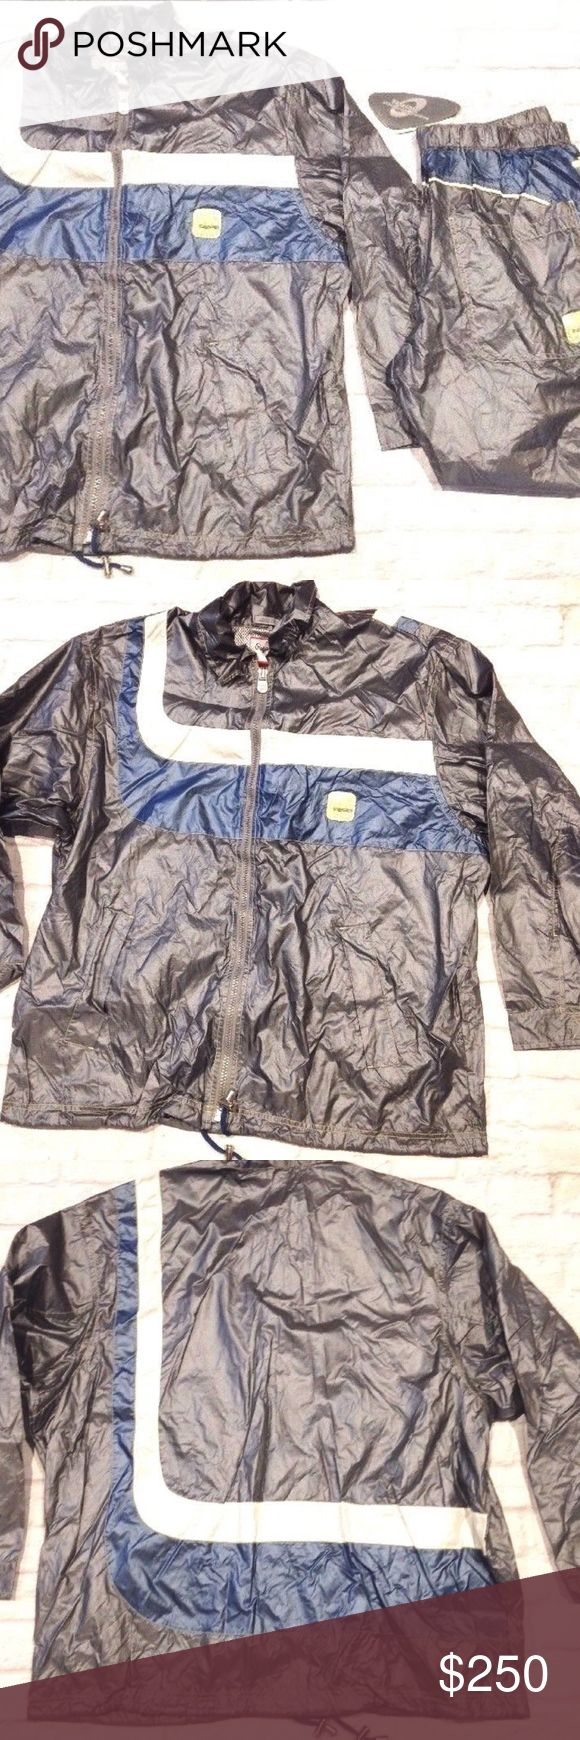 PEPE JEANS METALLIC WINDBREAKER TRACKSUIT 90s rap NEW WITH TAGS  RARE VINTAGE 90's PEPE JEANS LONDON VIRTUAL LIVING METALLIC WINDBREAKER TRACK SUIT  MENS SIZE XL  JACKET pit to pit = 27'' armpit to end of sleeve = 20'' length = 38''  PANTS Inseam = 31'' Length = 43'' Elastic Waist = 20'' Pepe Jeans Jackets & Coats Windbreakers